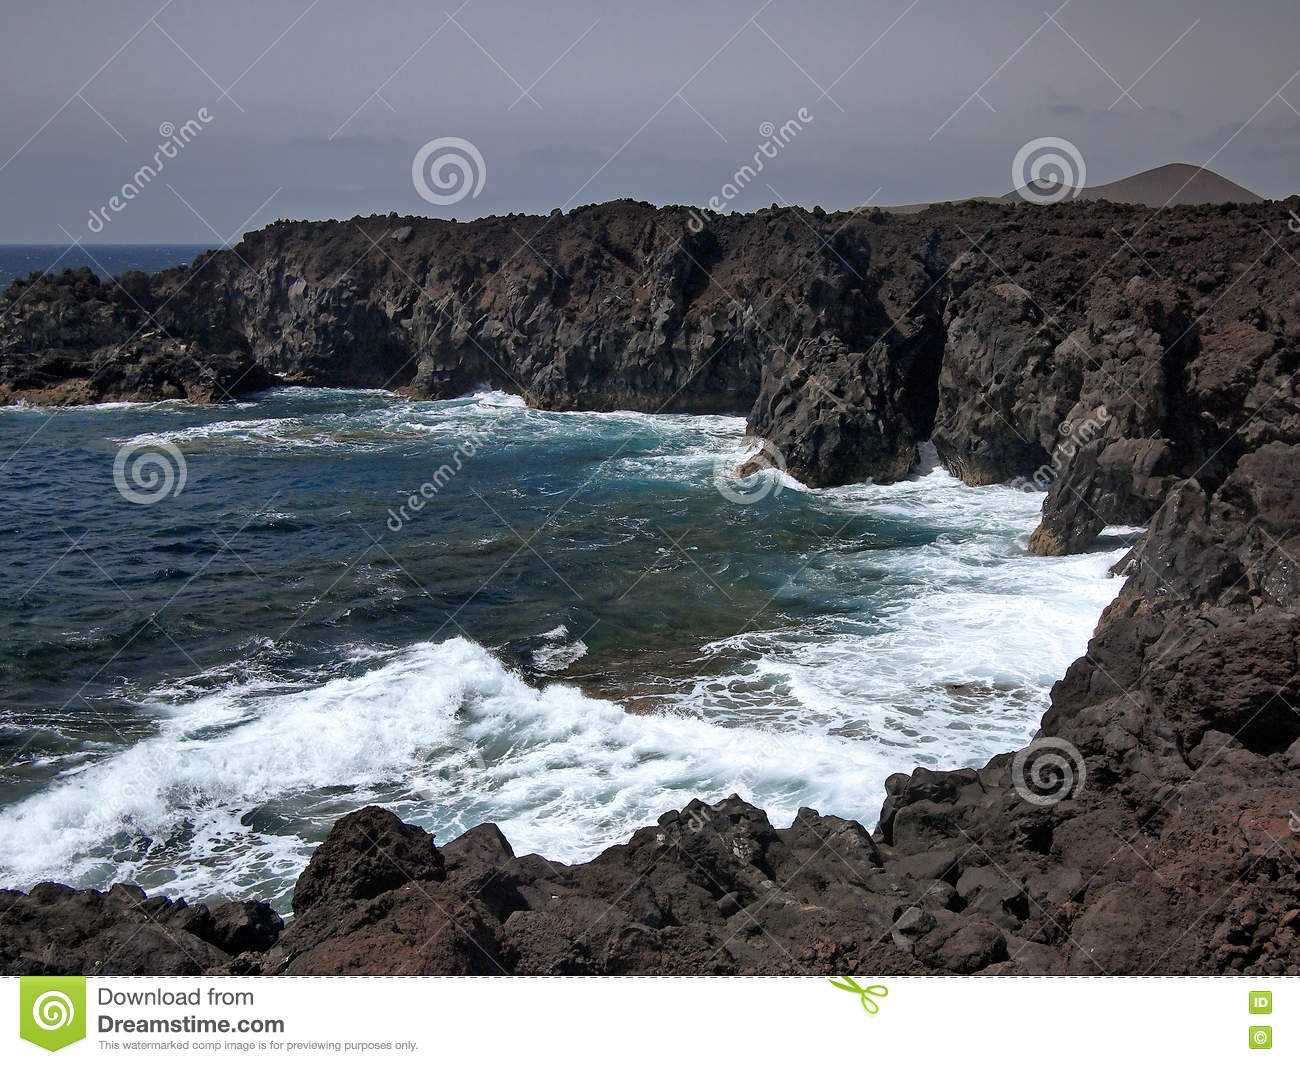 Ocean waves breaking on the rocky coast of hardened lava with caverns and cavities. Mountains and volcanoes on the horizon